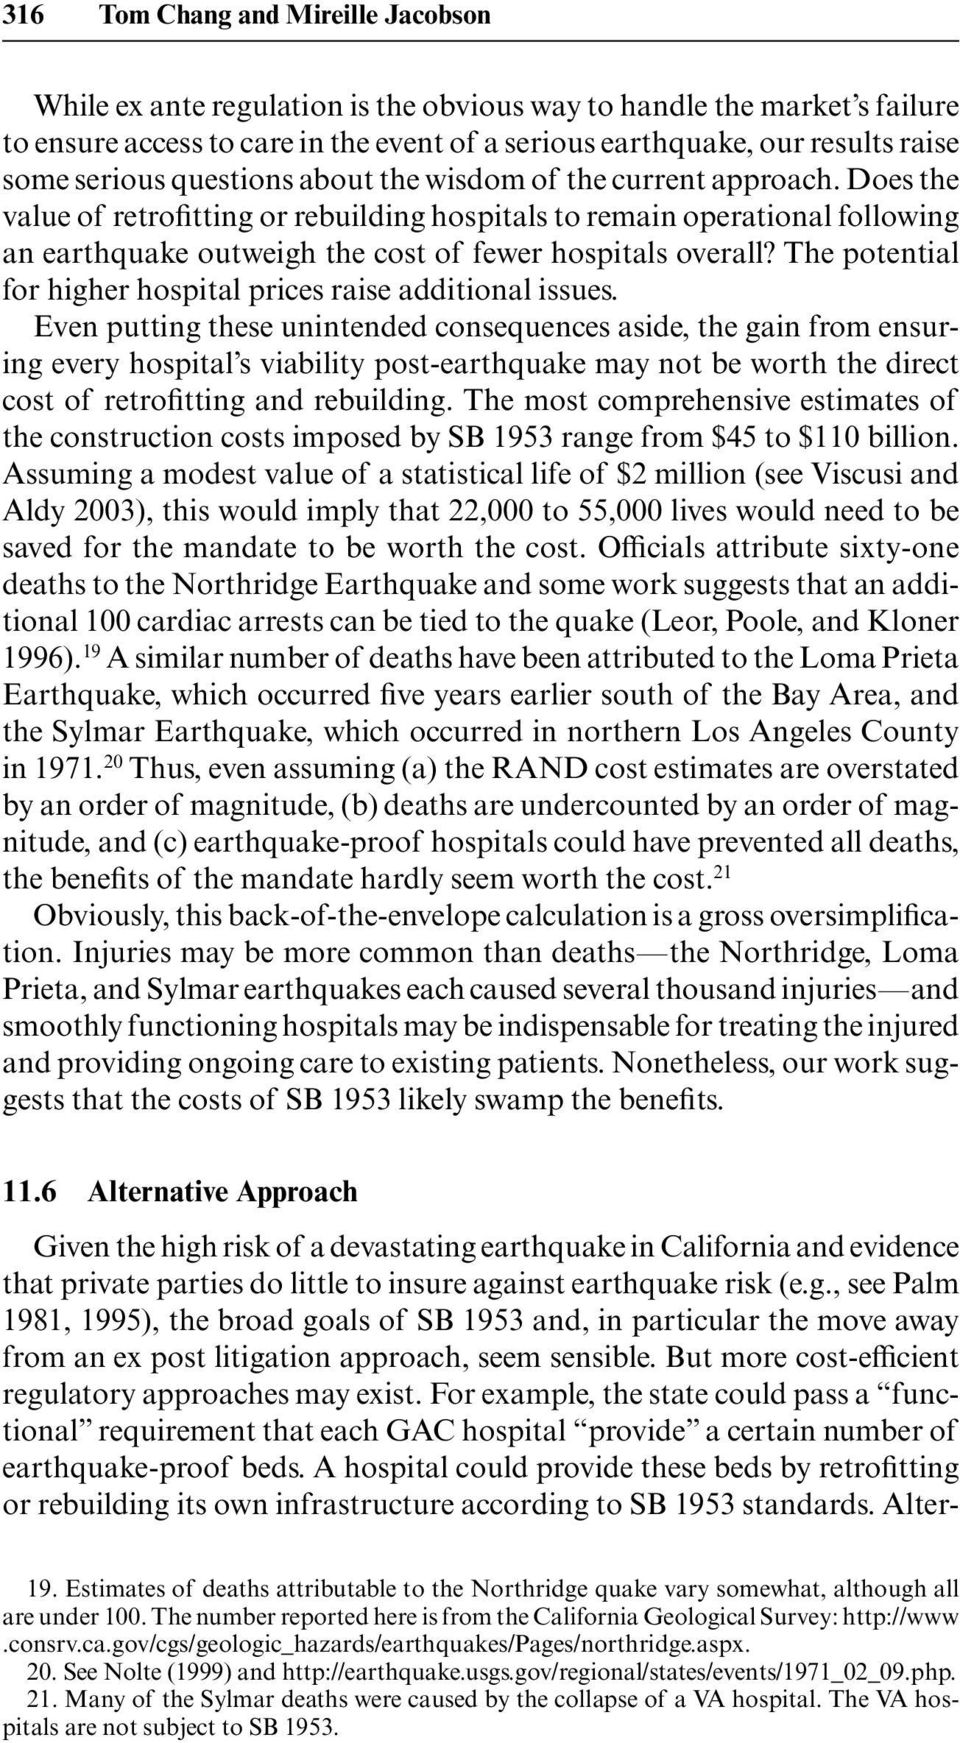 Does the value of retrofitting or rebuilding hospitals to remain operational following an earthquake outweigh the cost of fewer hospitals overall?